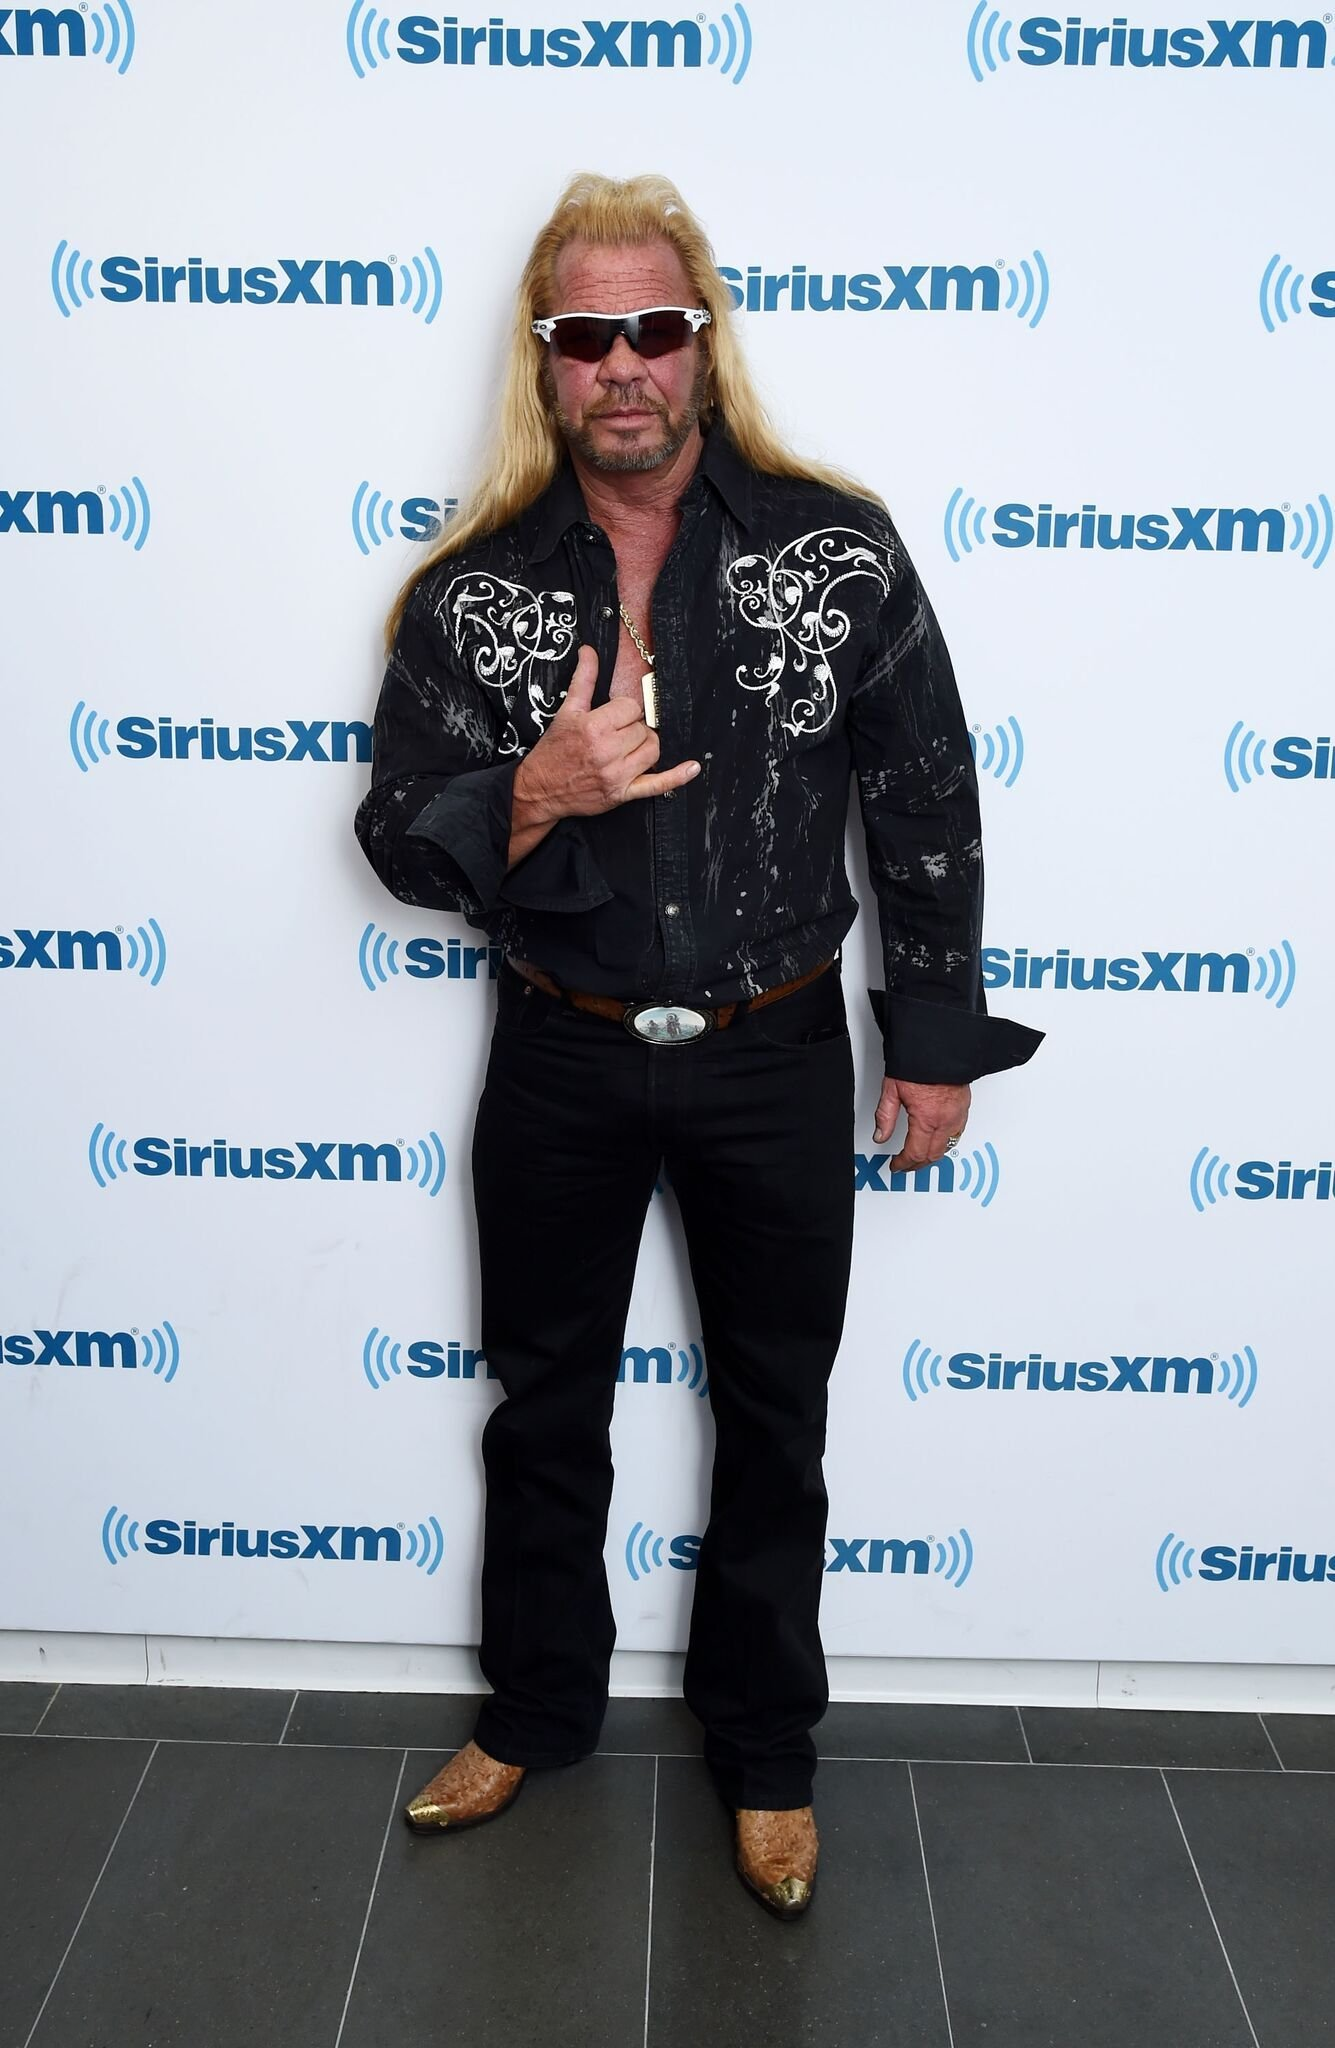 Dog the Bounty Hunter, Duane Chapman visits the SiriusXM Studios | Getty Images/ Gloabl Images Ukraine